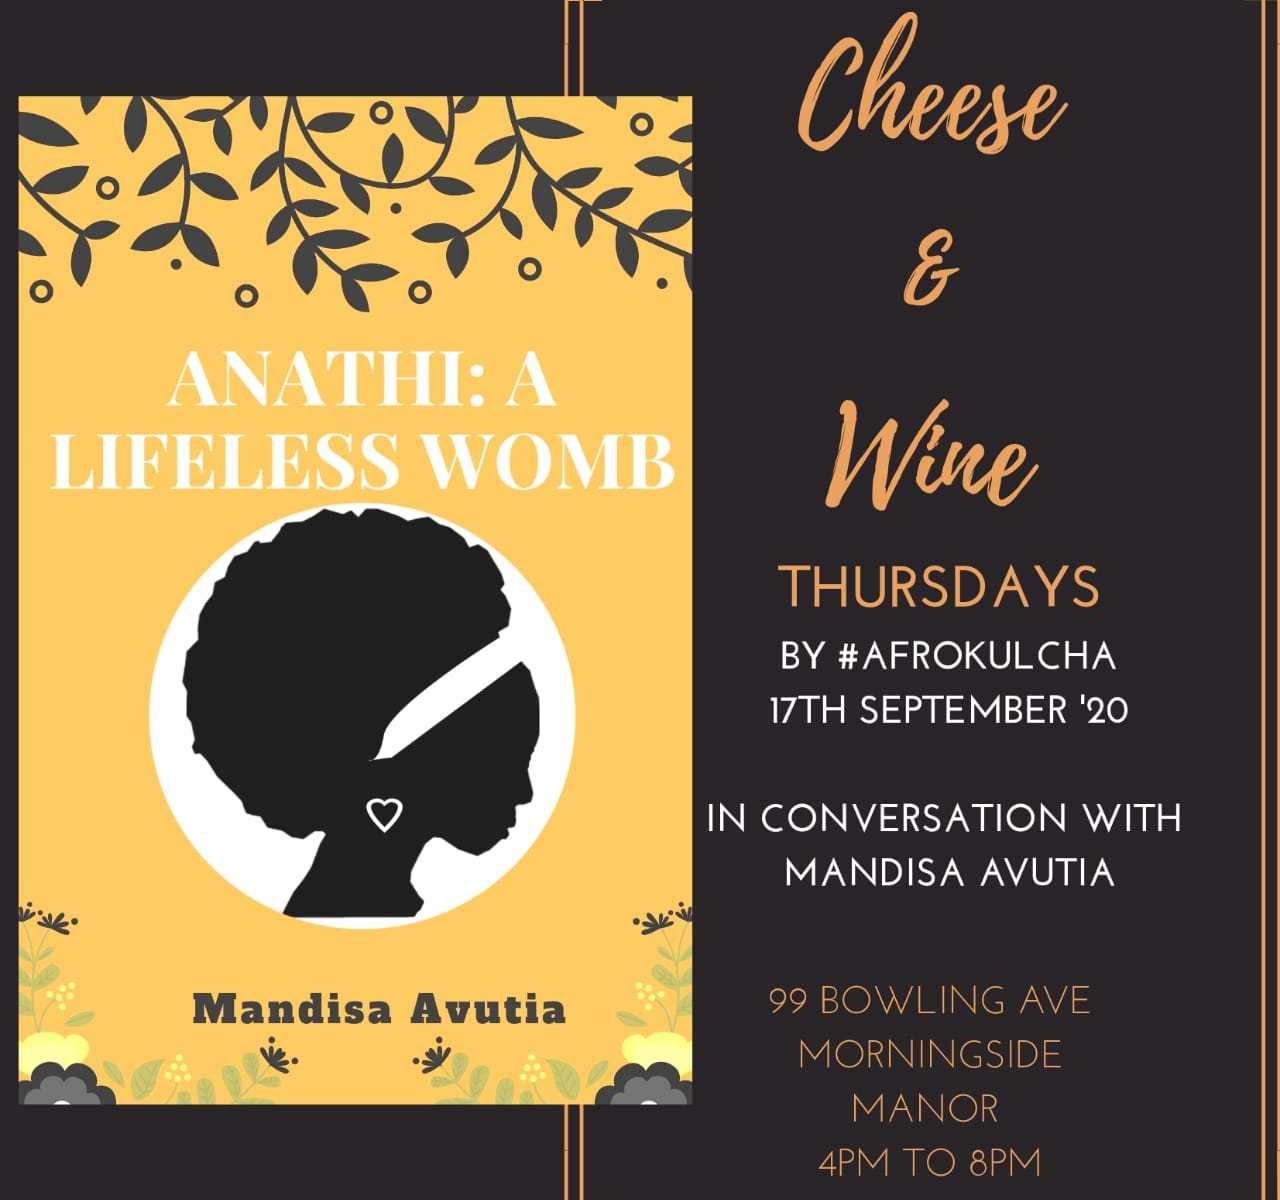 Cheese & Wine Thursdays Poster with Afrokulcha